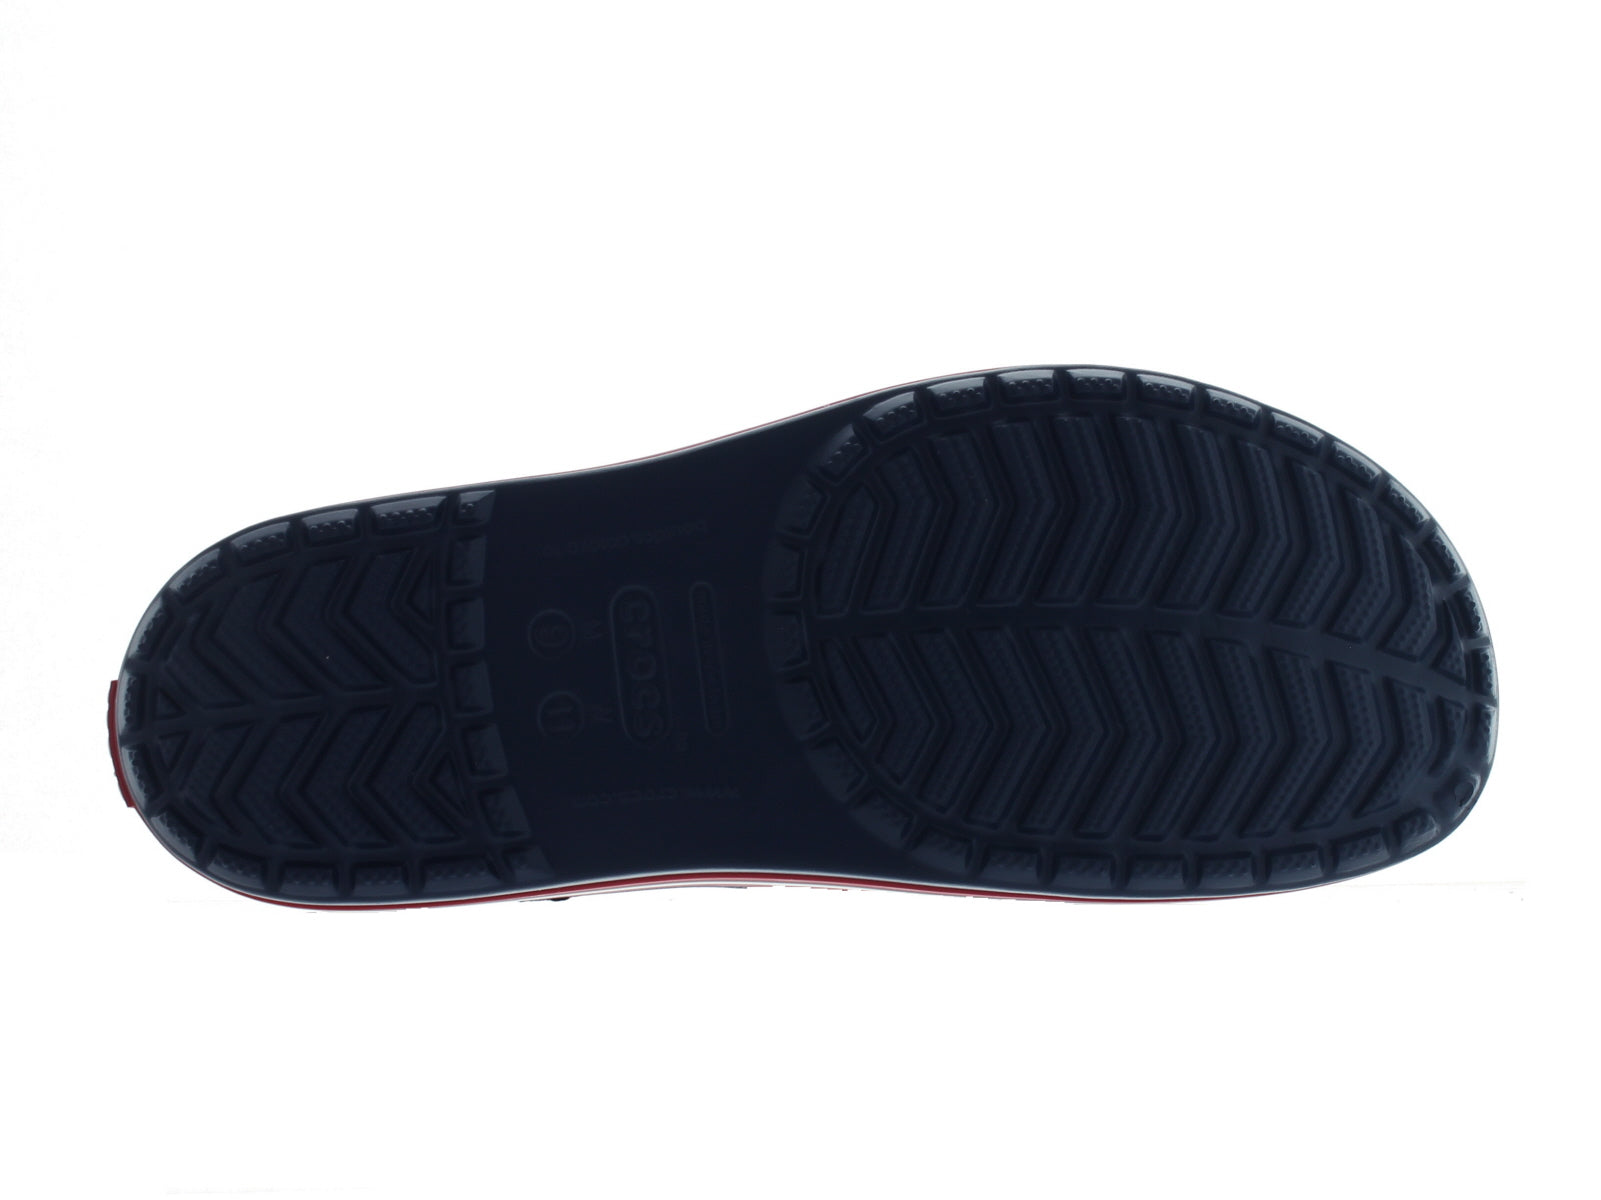 Crocband 11 Slide in Navy sole view